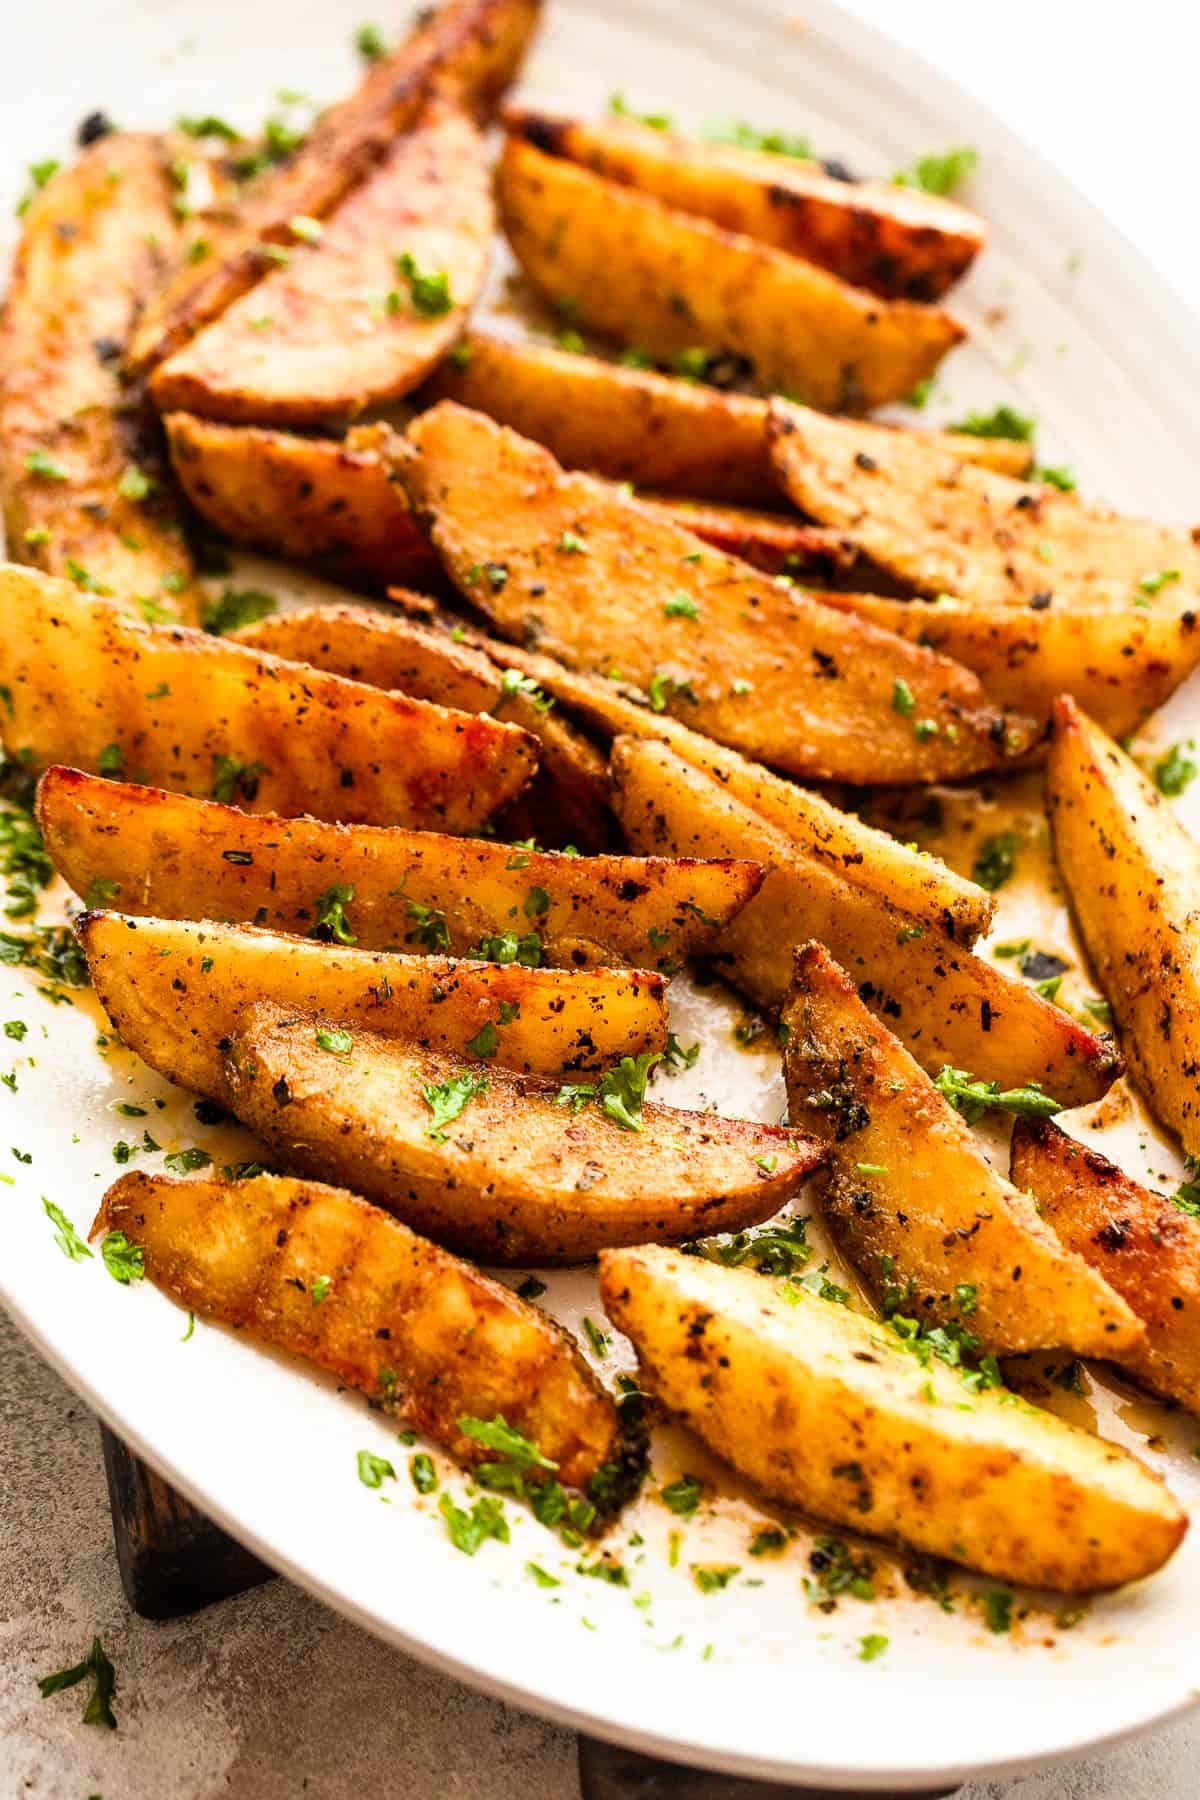 Grilled Potato Wedges served on a white oval platter